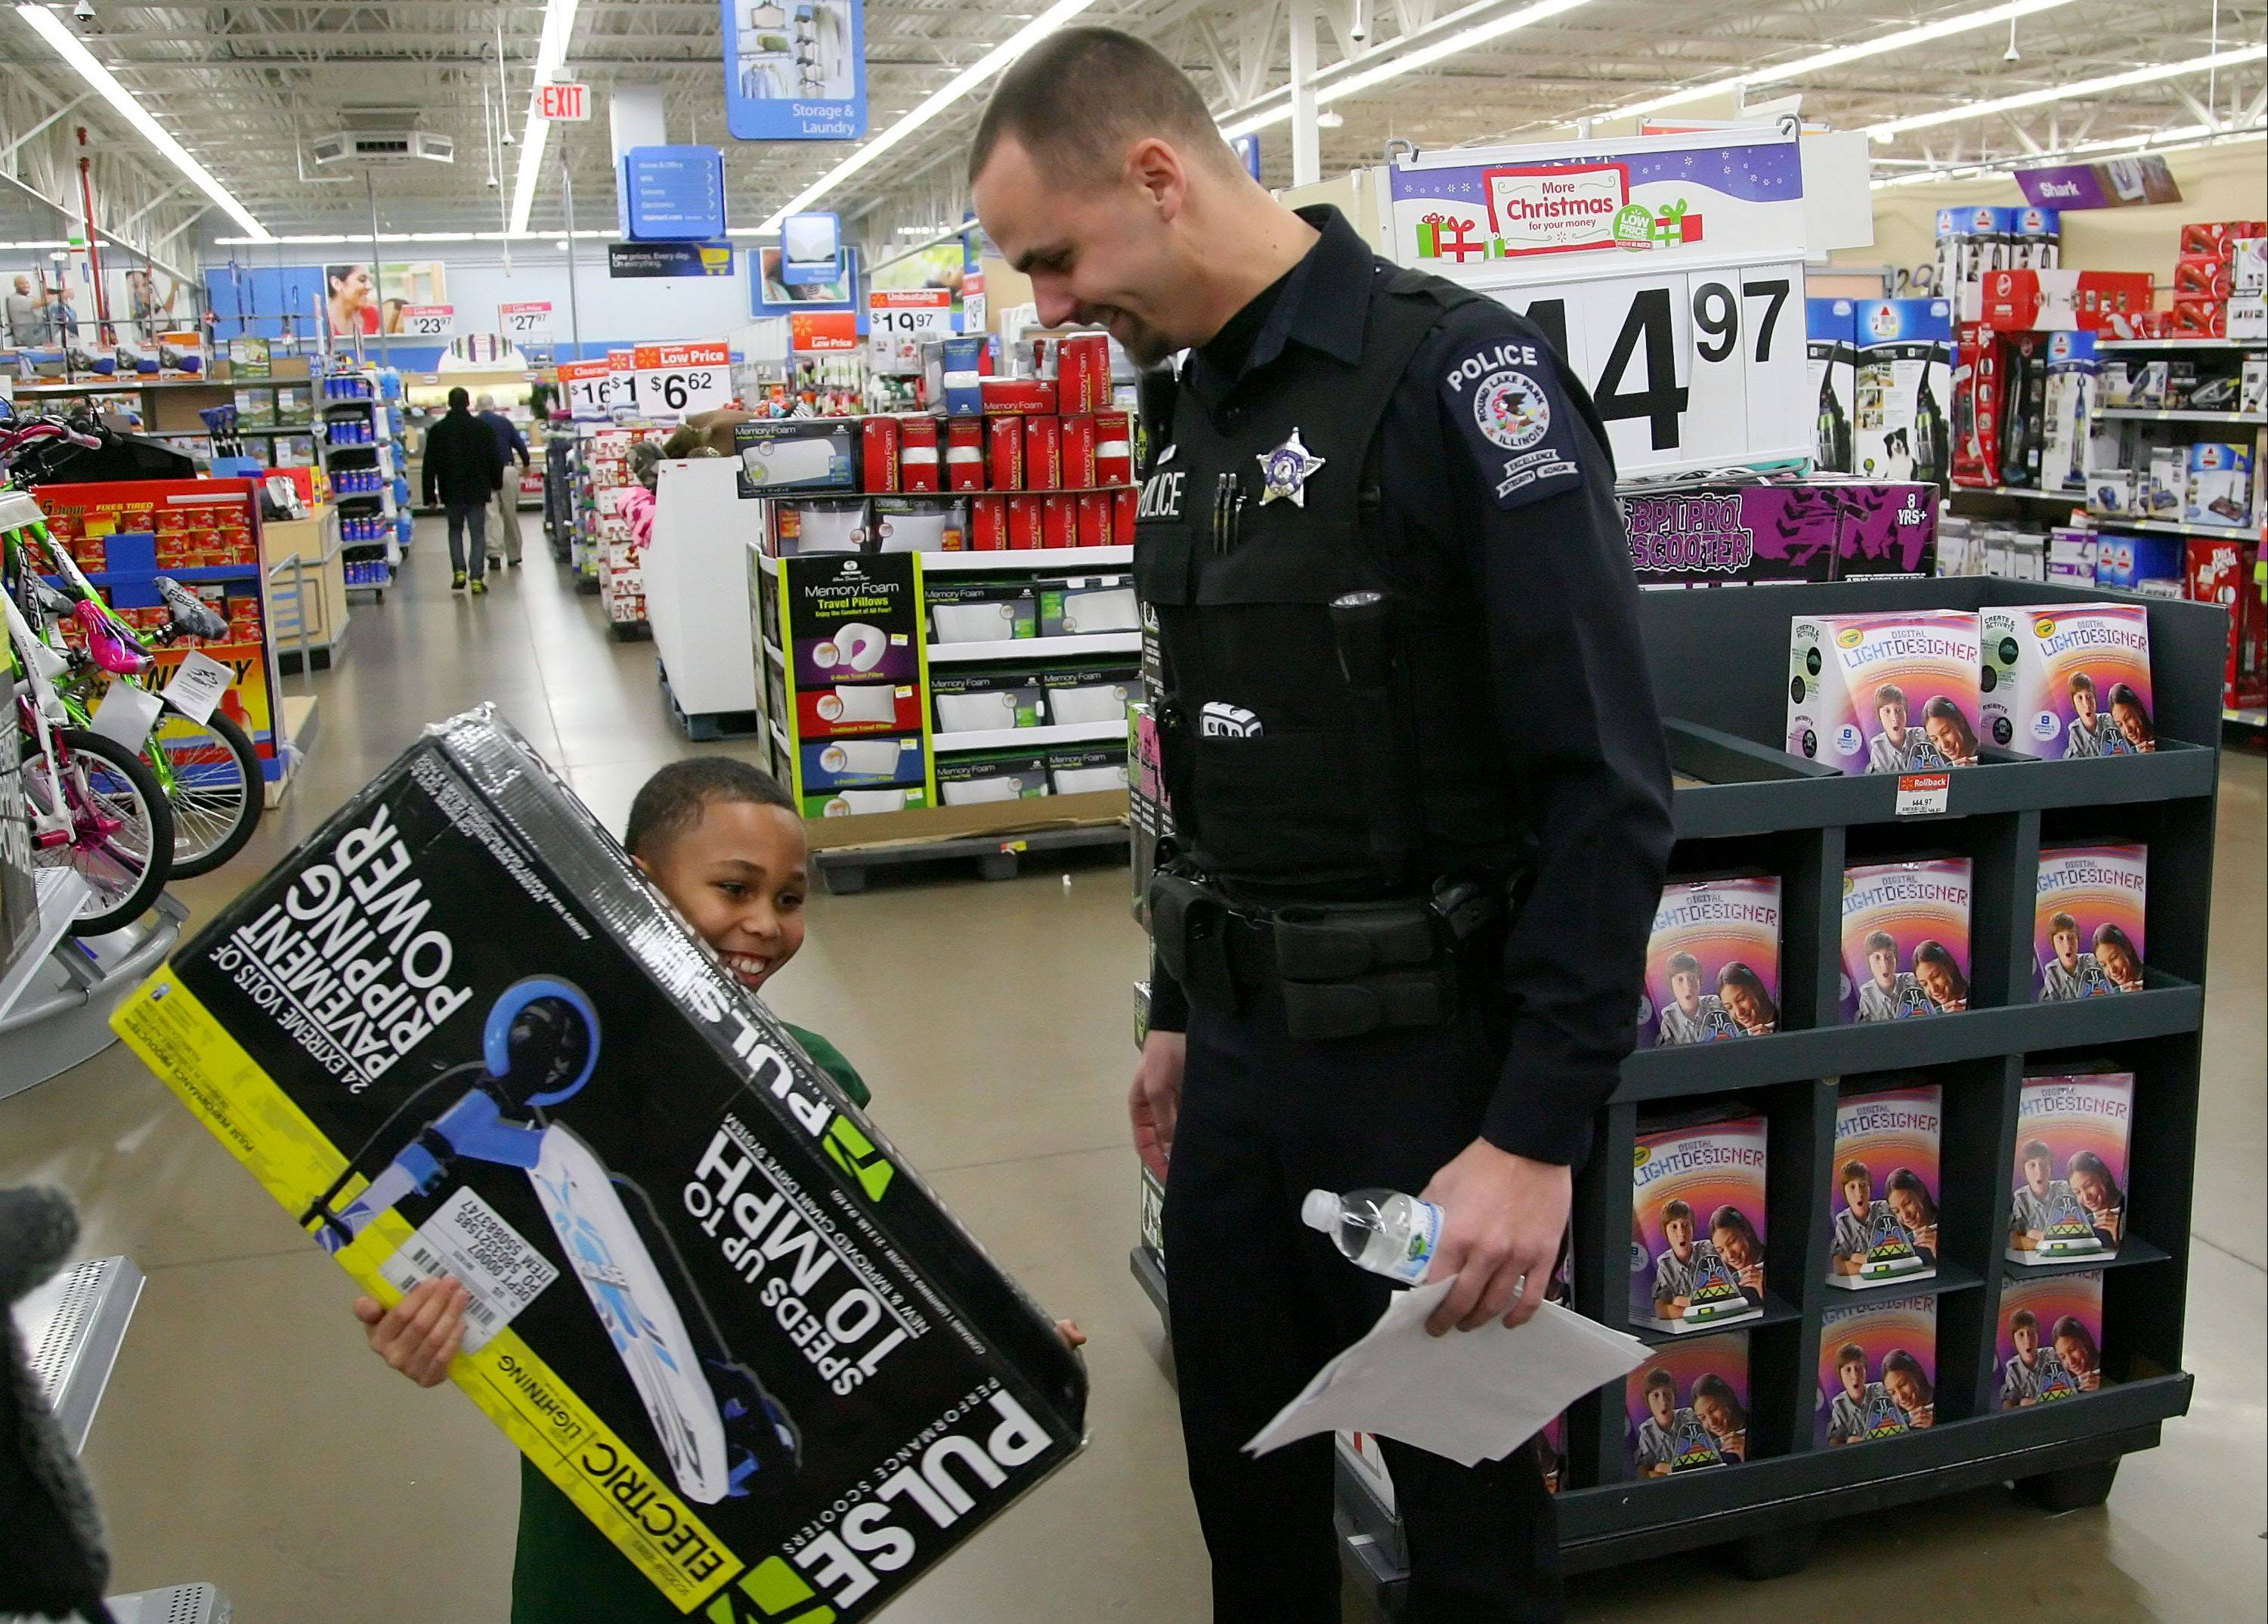 Round Lake Park police officer Steve Sliozis helps 9-year-old Demar Hill of Hainesville select Christmas presents during Monday's Shop with a Cop at Walmart in Round Lake Beach. It was the 17th consecutive year Round Lake Park police put together Lake County's original Shop with a Cop program.